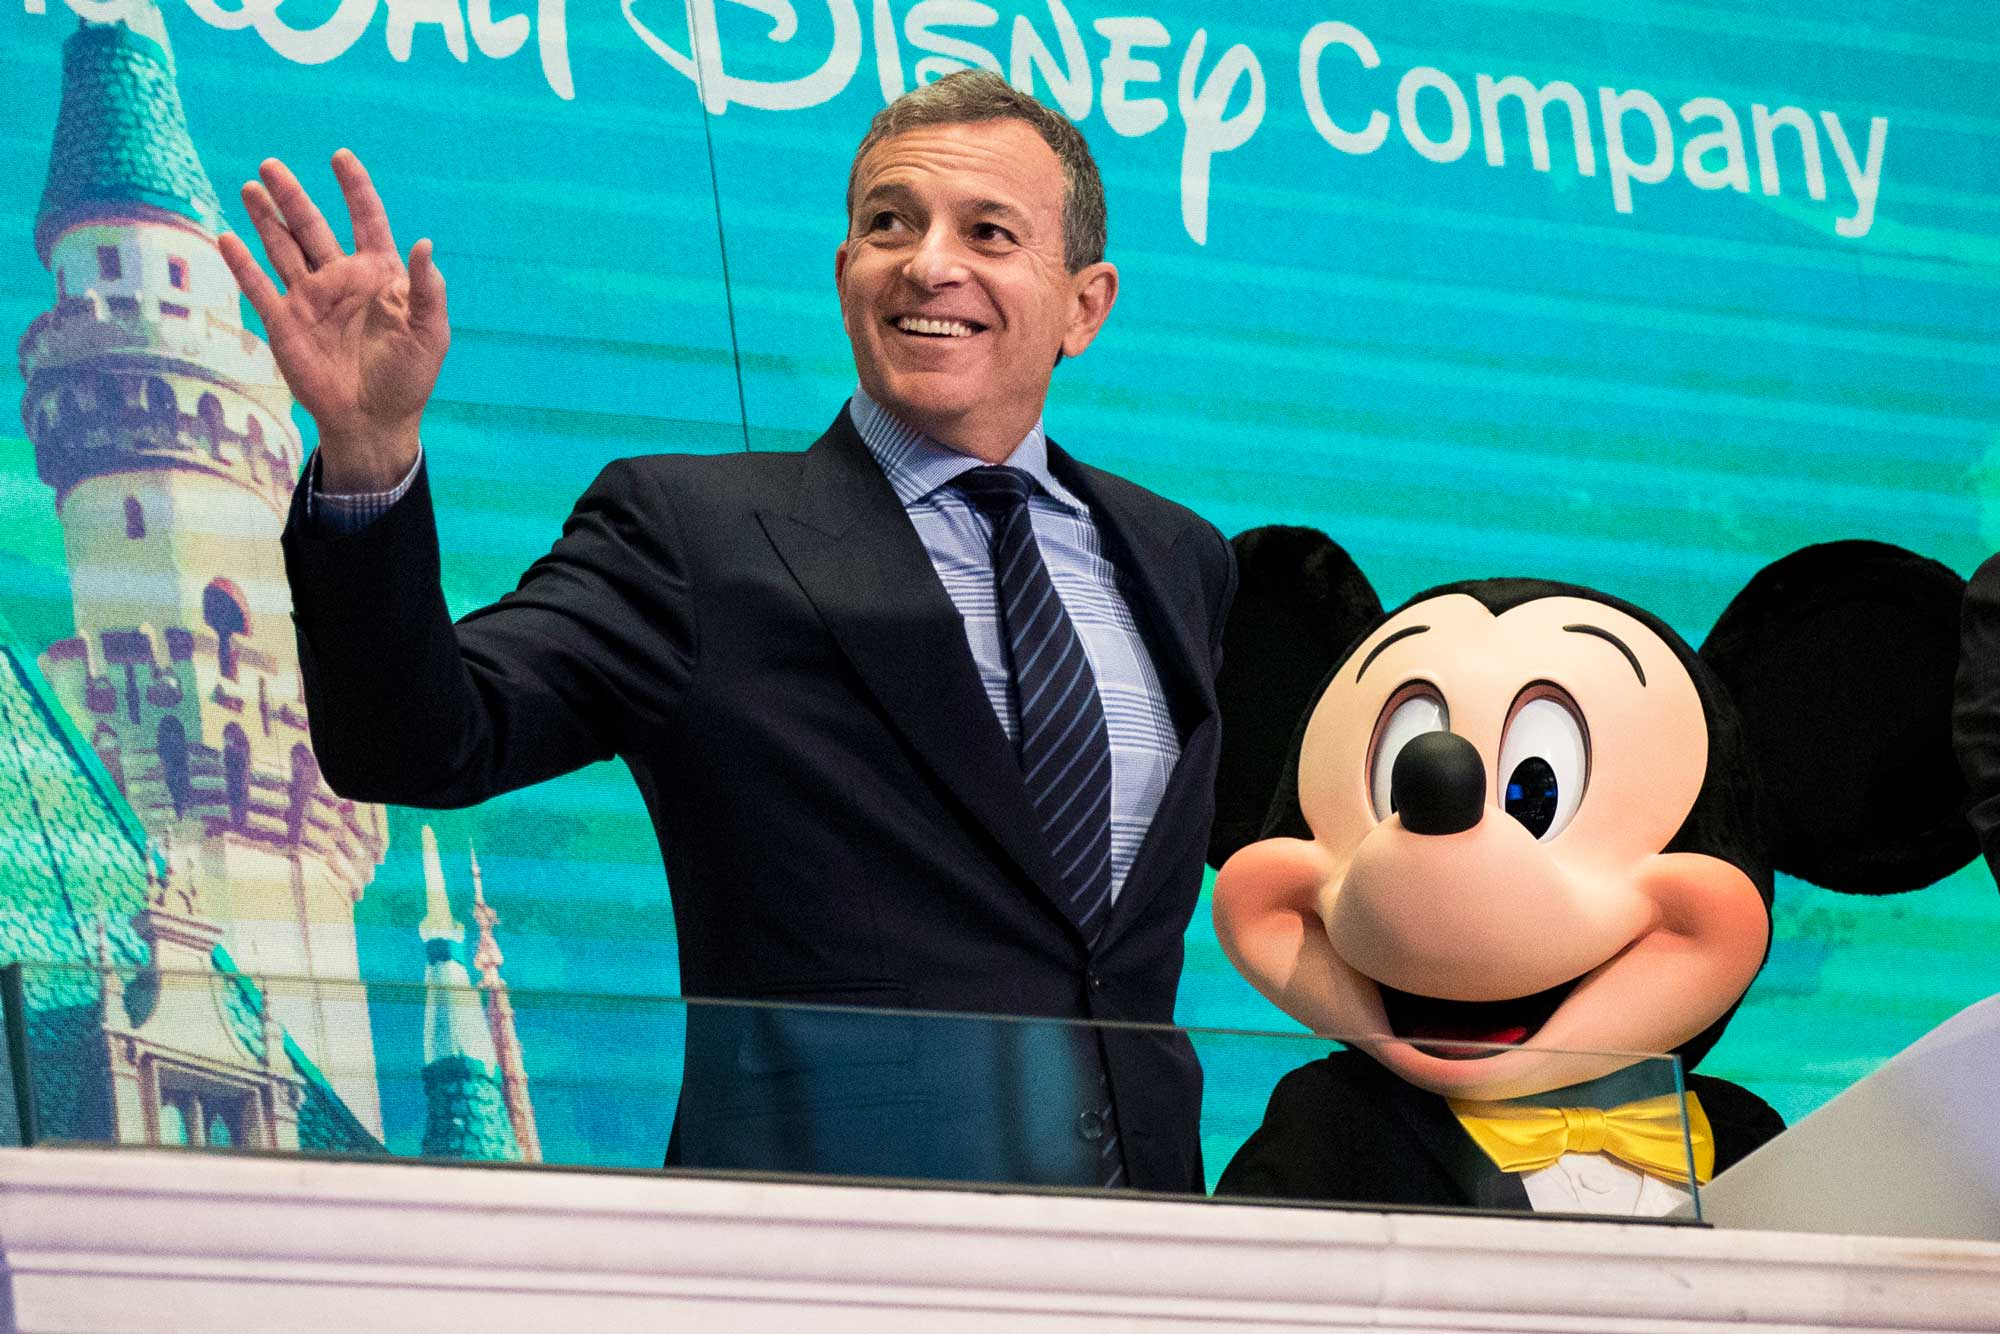 Disney set to report earnings after the bell